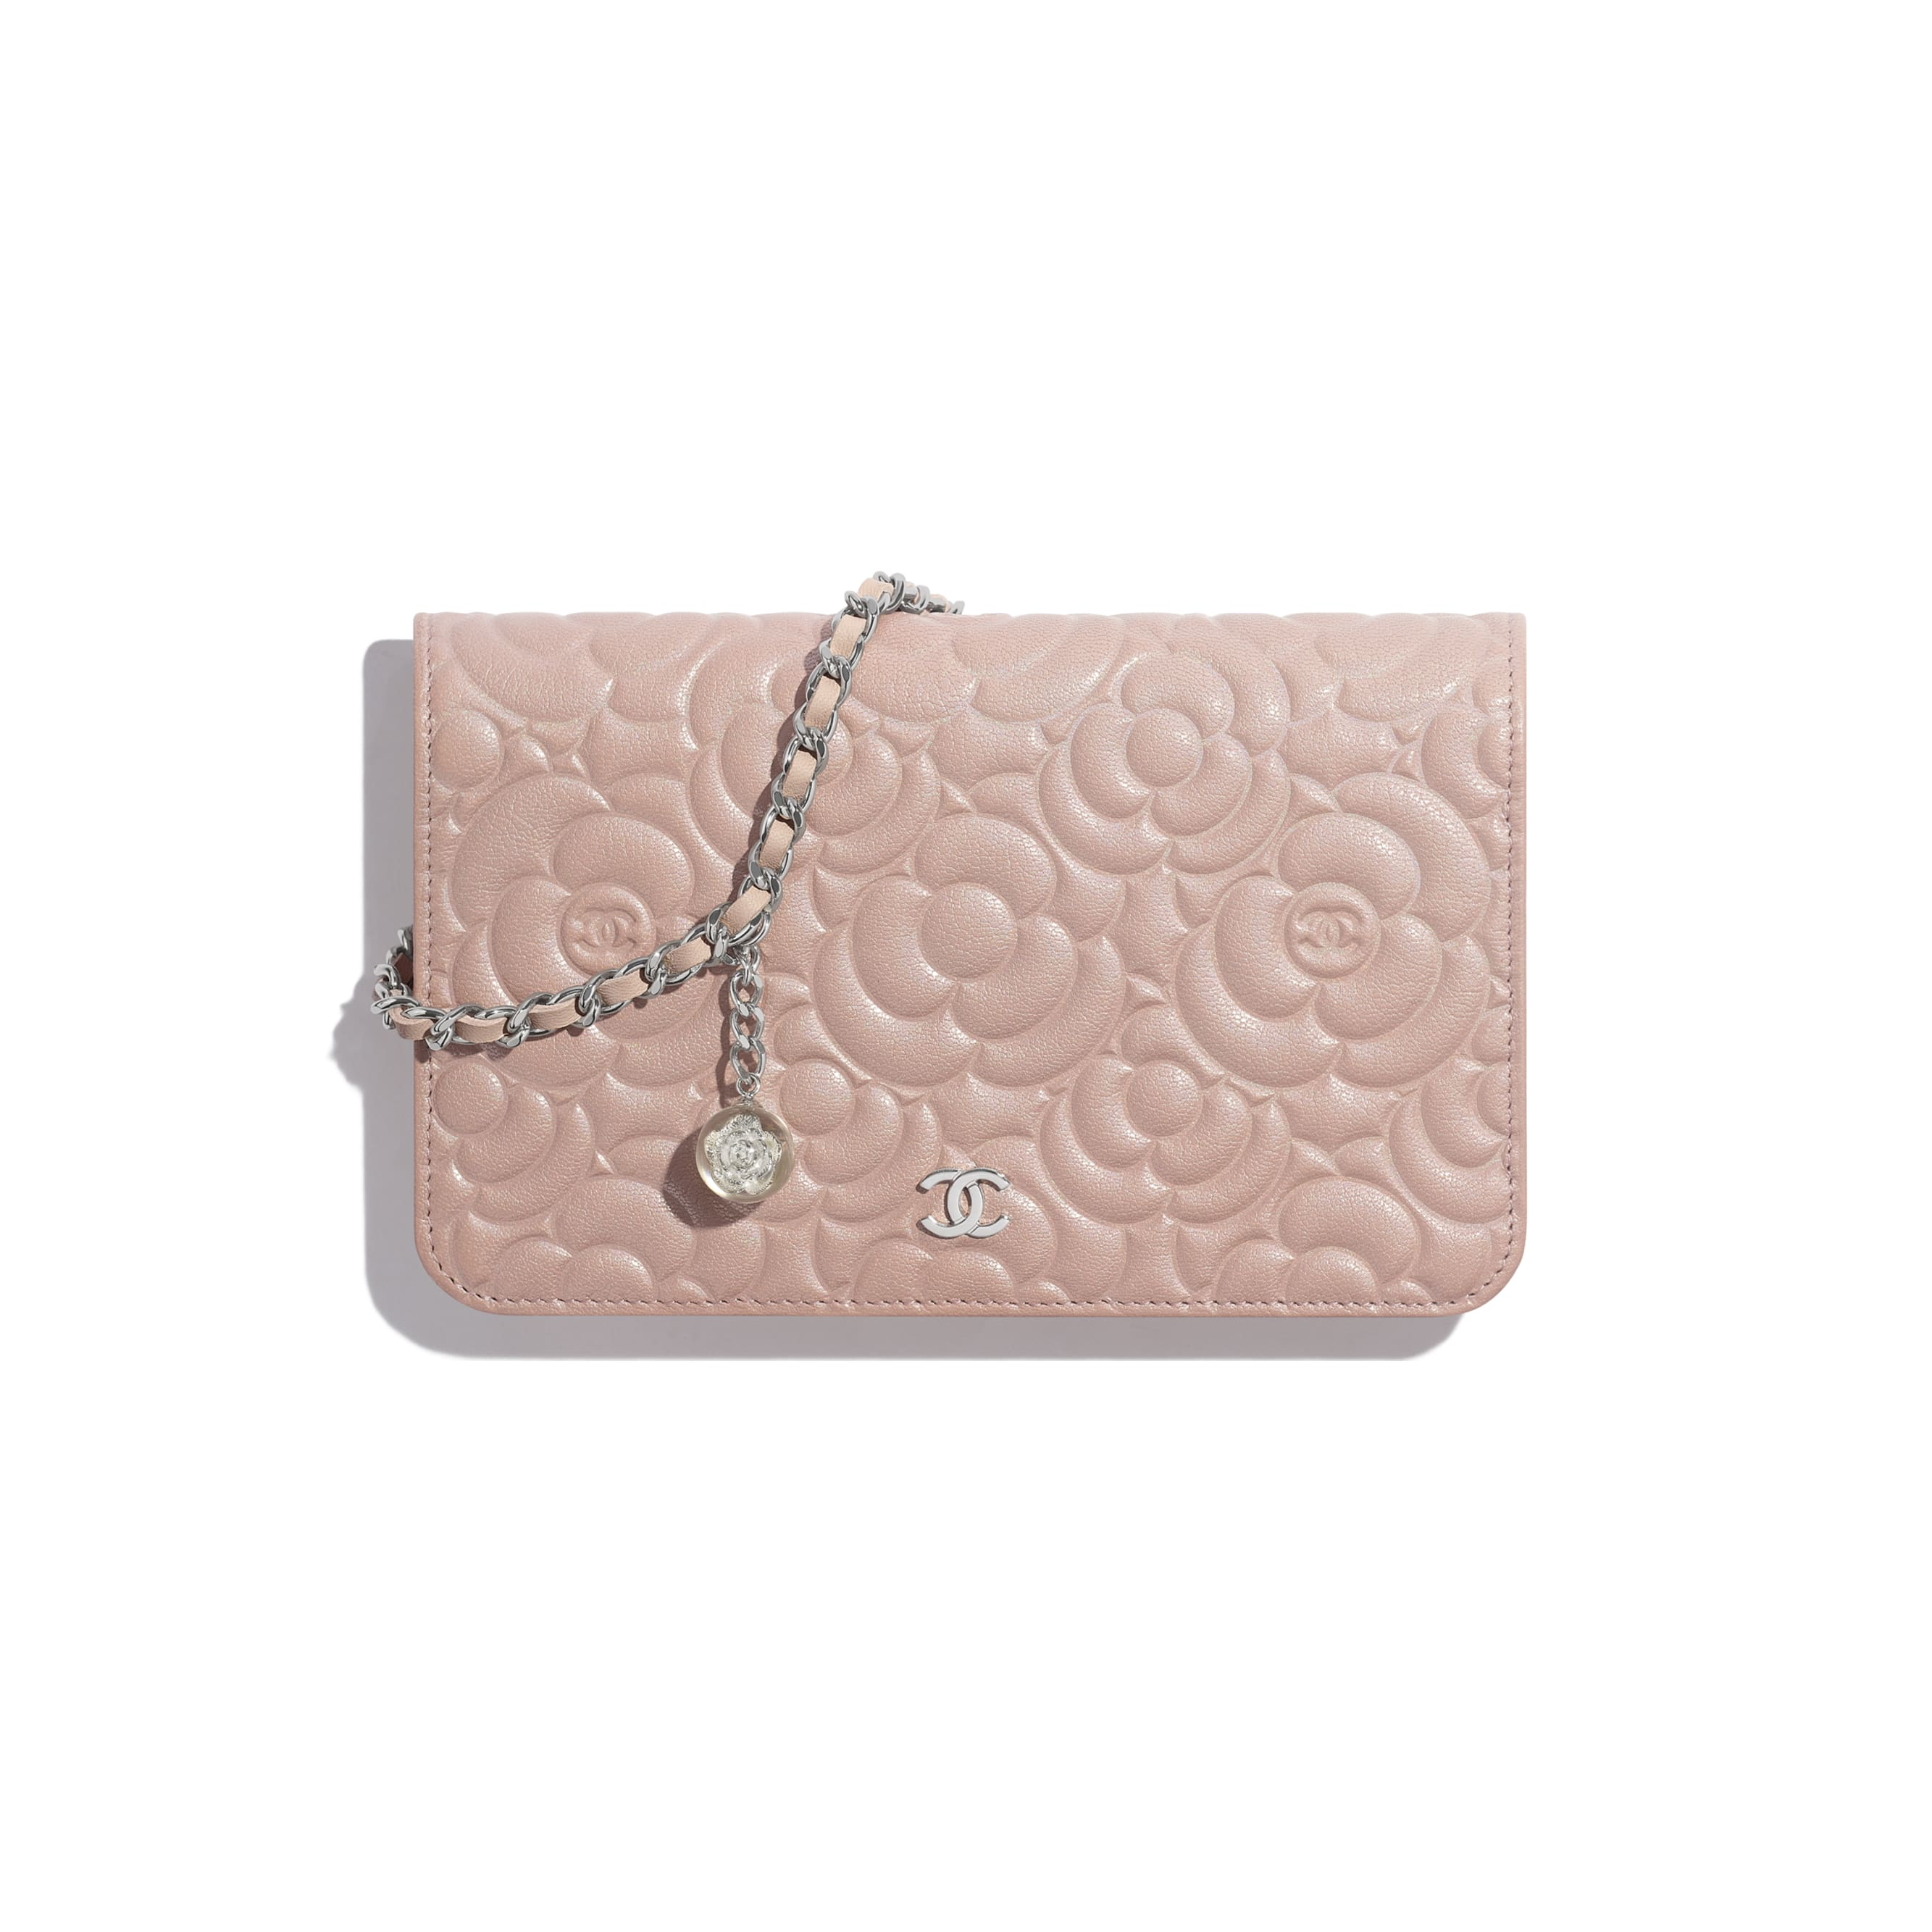 Wallet on Chain - Light Pink - Satin Finish Goatskin & Silver-Tone Metal - Default view - see standard sized version